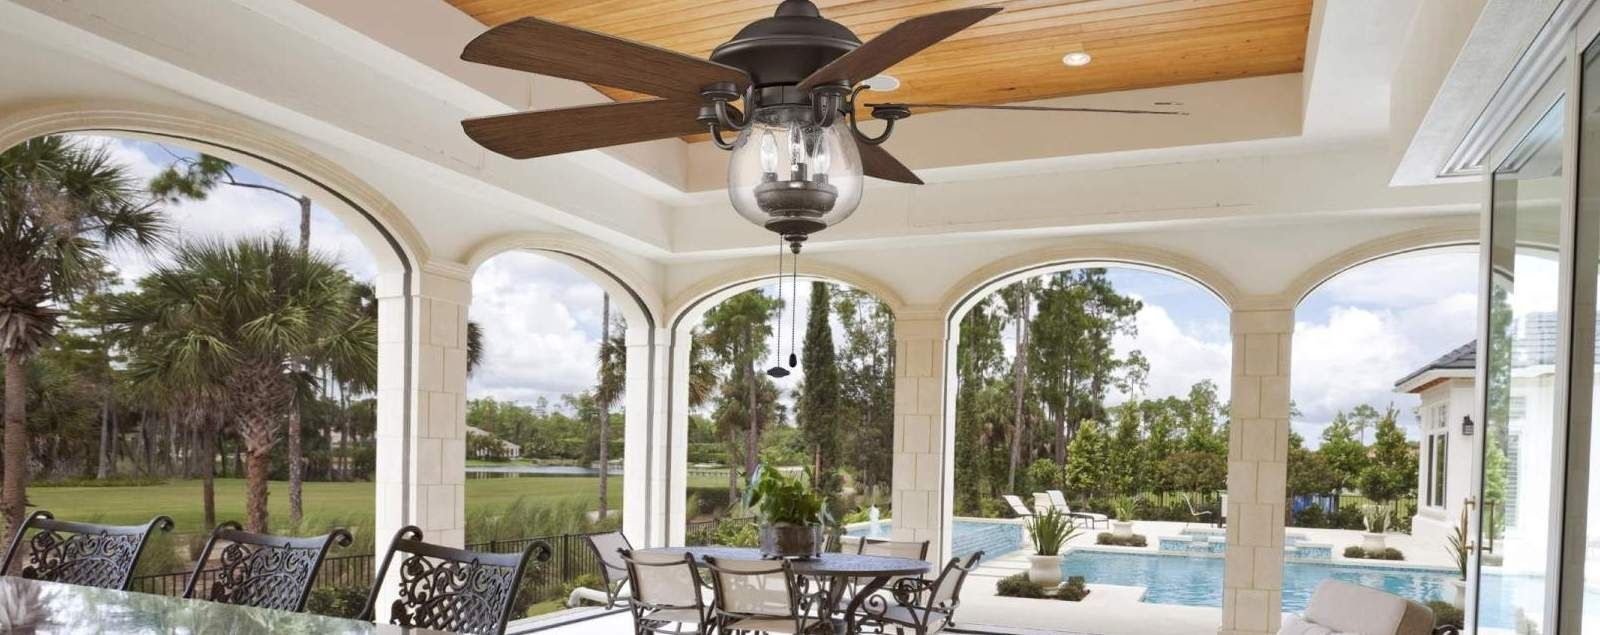 Metal Outdoor Ceiling Fans With Light Pertaining To Well Known Outdoor Ceiling Fans – Shop Wet, Dry, And Damp Rated Outdoor Fans (View 8 of 20)